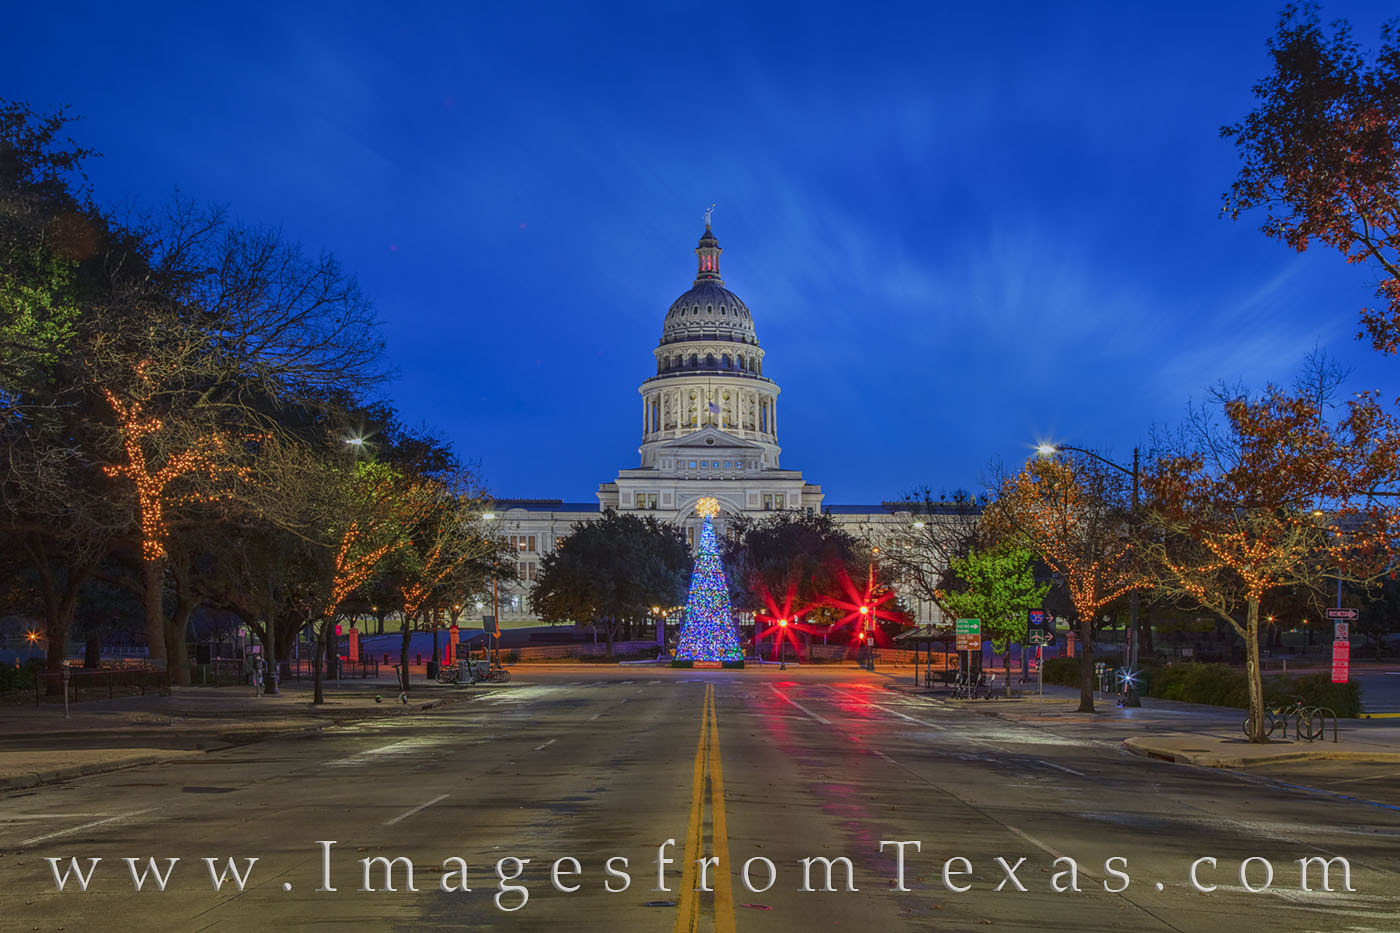 texas state capitol, state capitol, congress avenue, congress, christmas tree, christmas, holiday, december, holiday tree, christmas card, season greetings, season, greetings, texas, capitol, photo